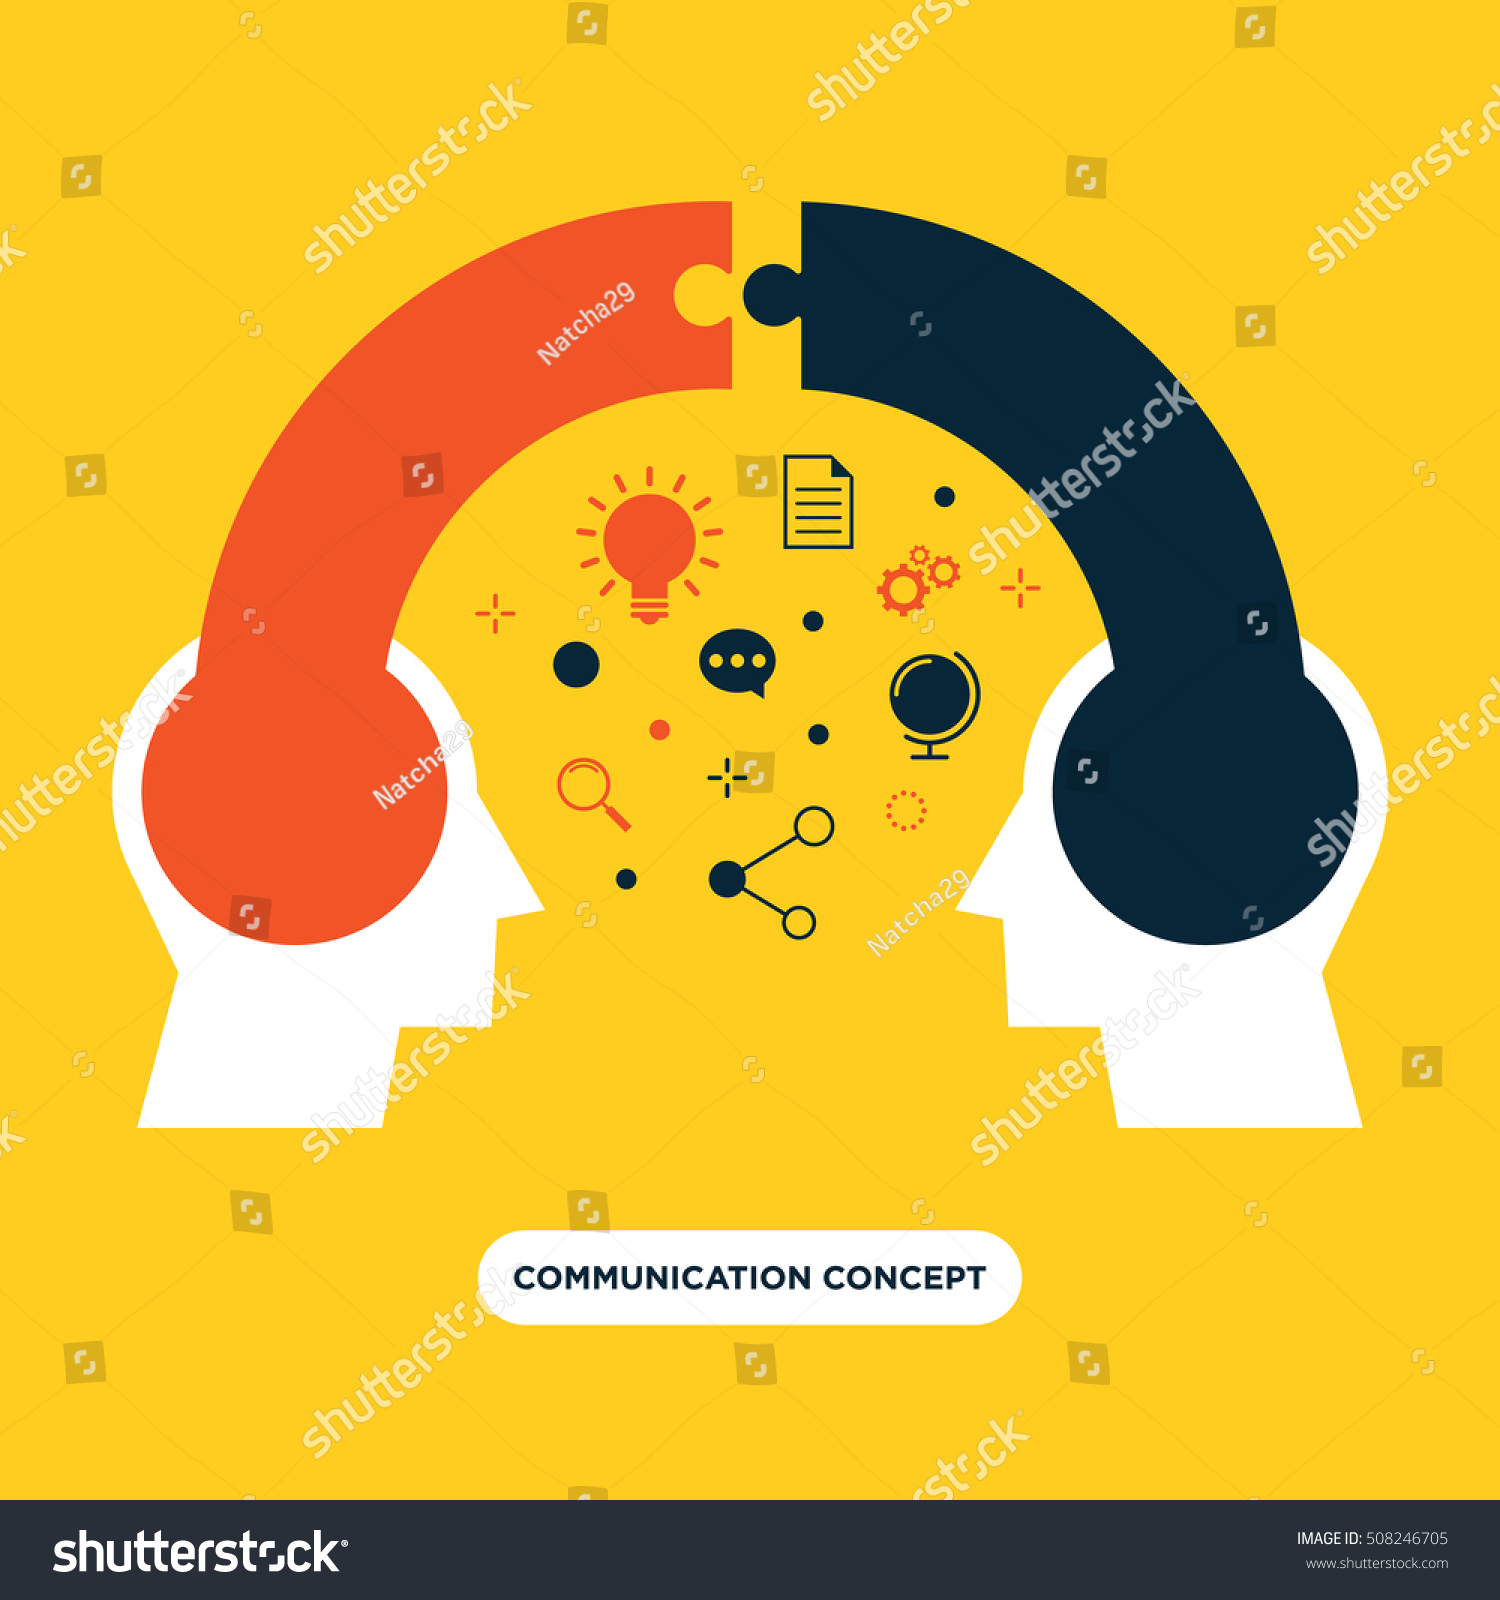 Communication concept opinion exchange flat design stock vector communication concept opinion exchange flat design vector illustration buycottarizona